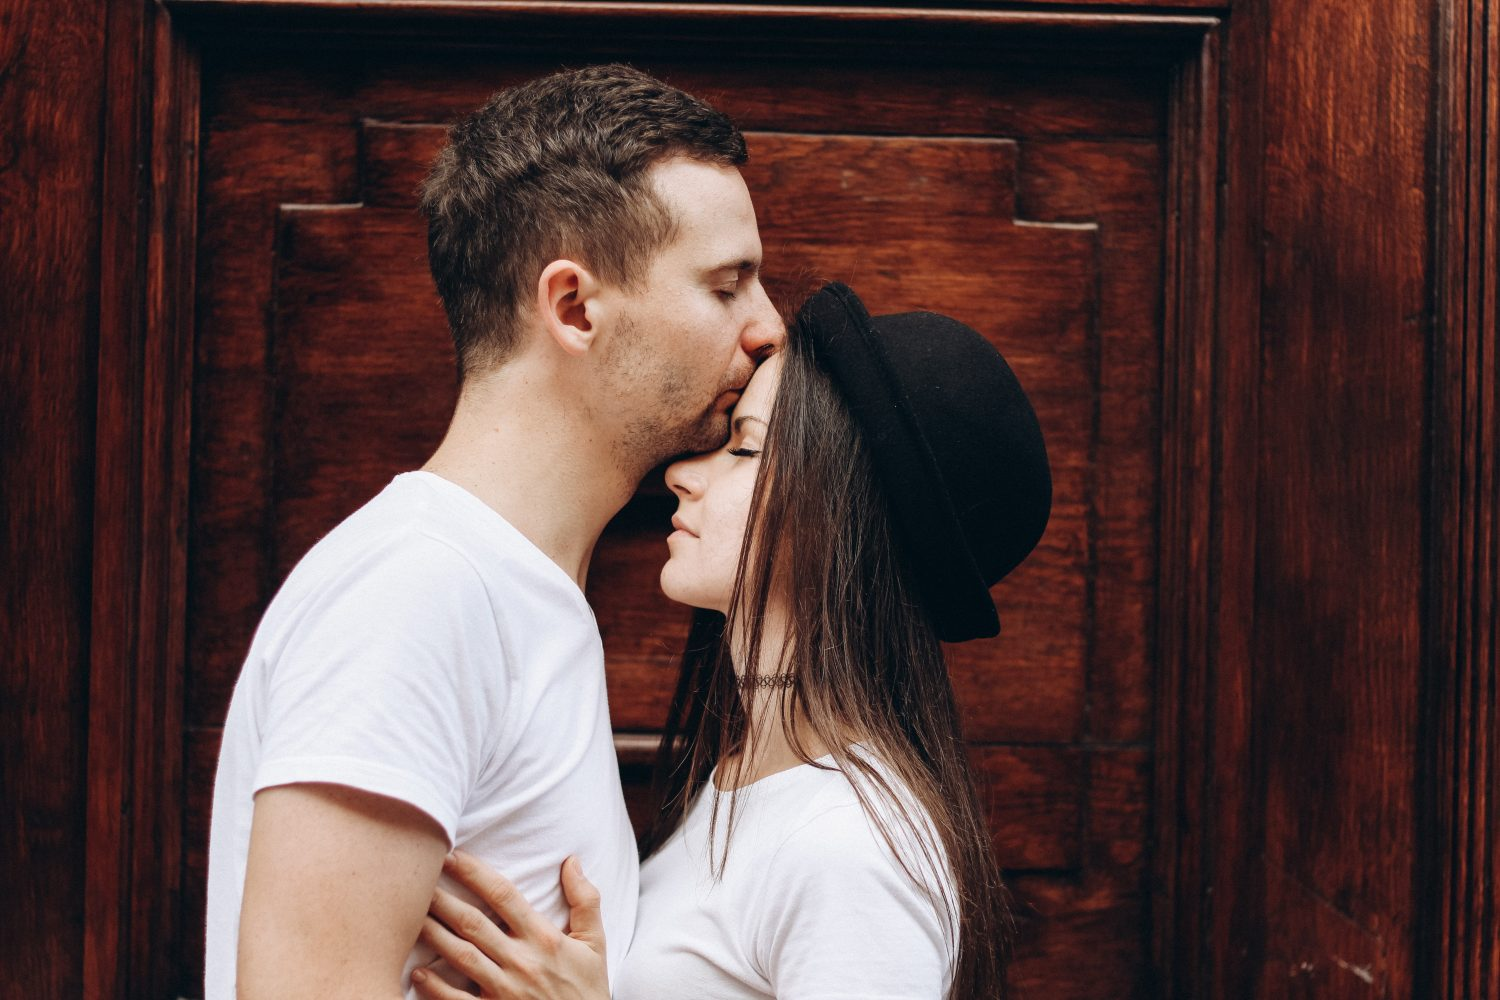 Rebounds And Regrets: Why You Should Not Rush Into A New Relationship After A Breakup